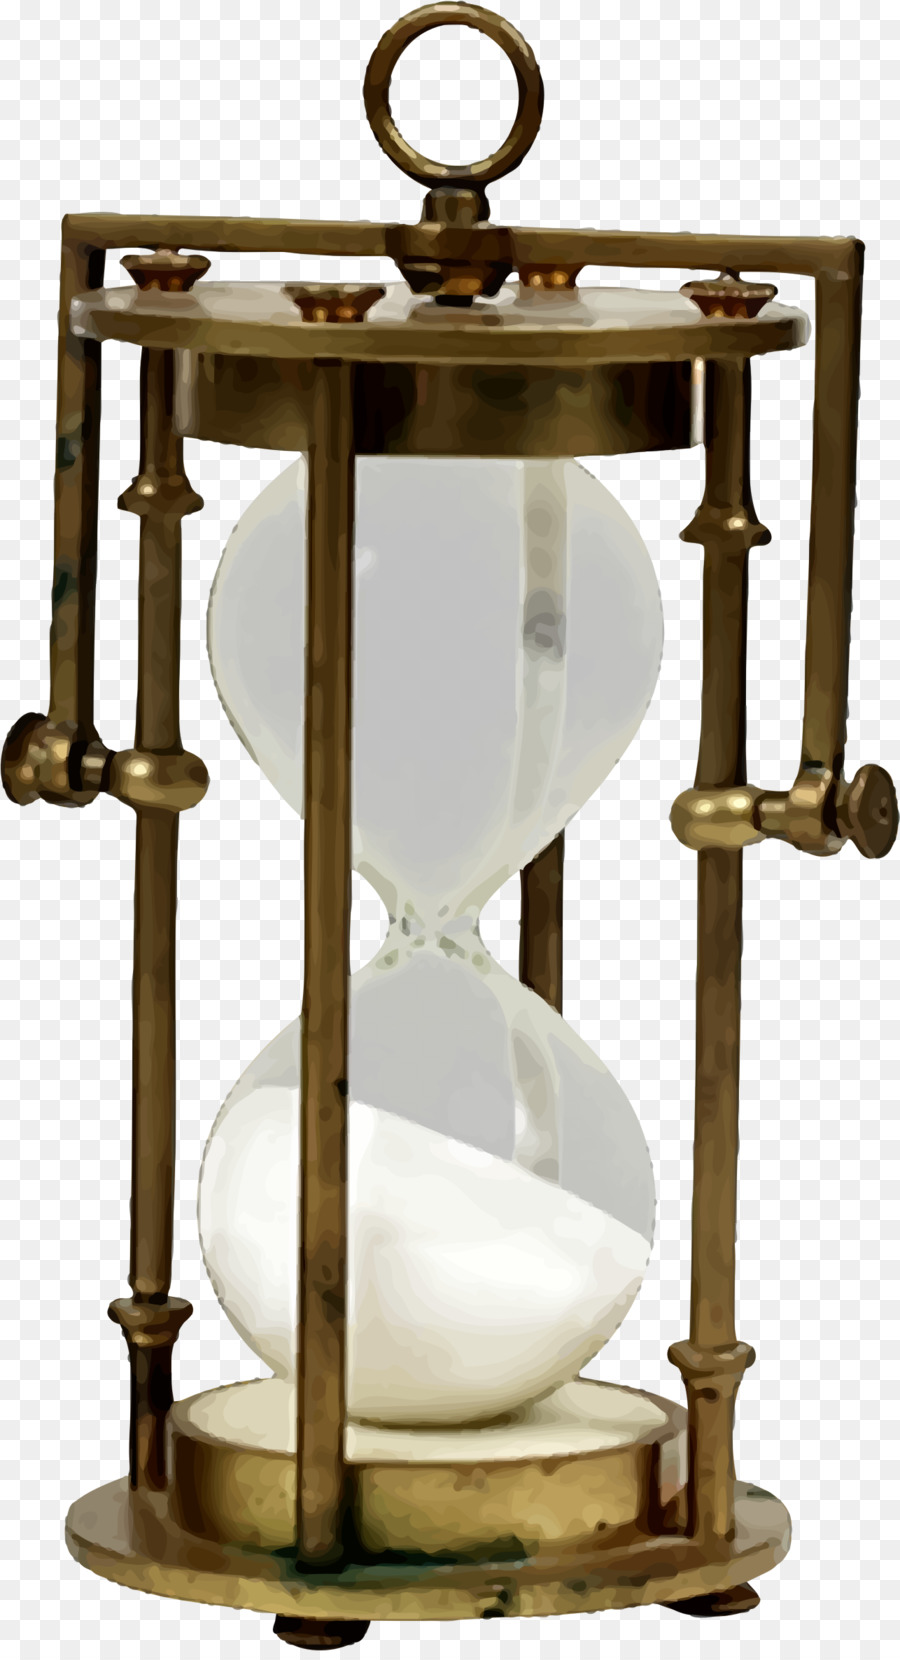 hight resolution of hourglass clipart hourglass time